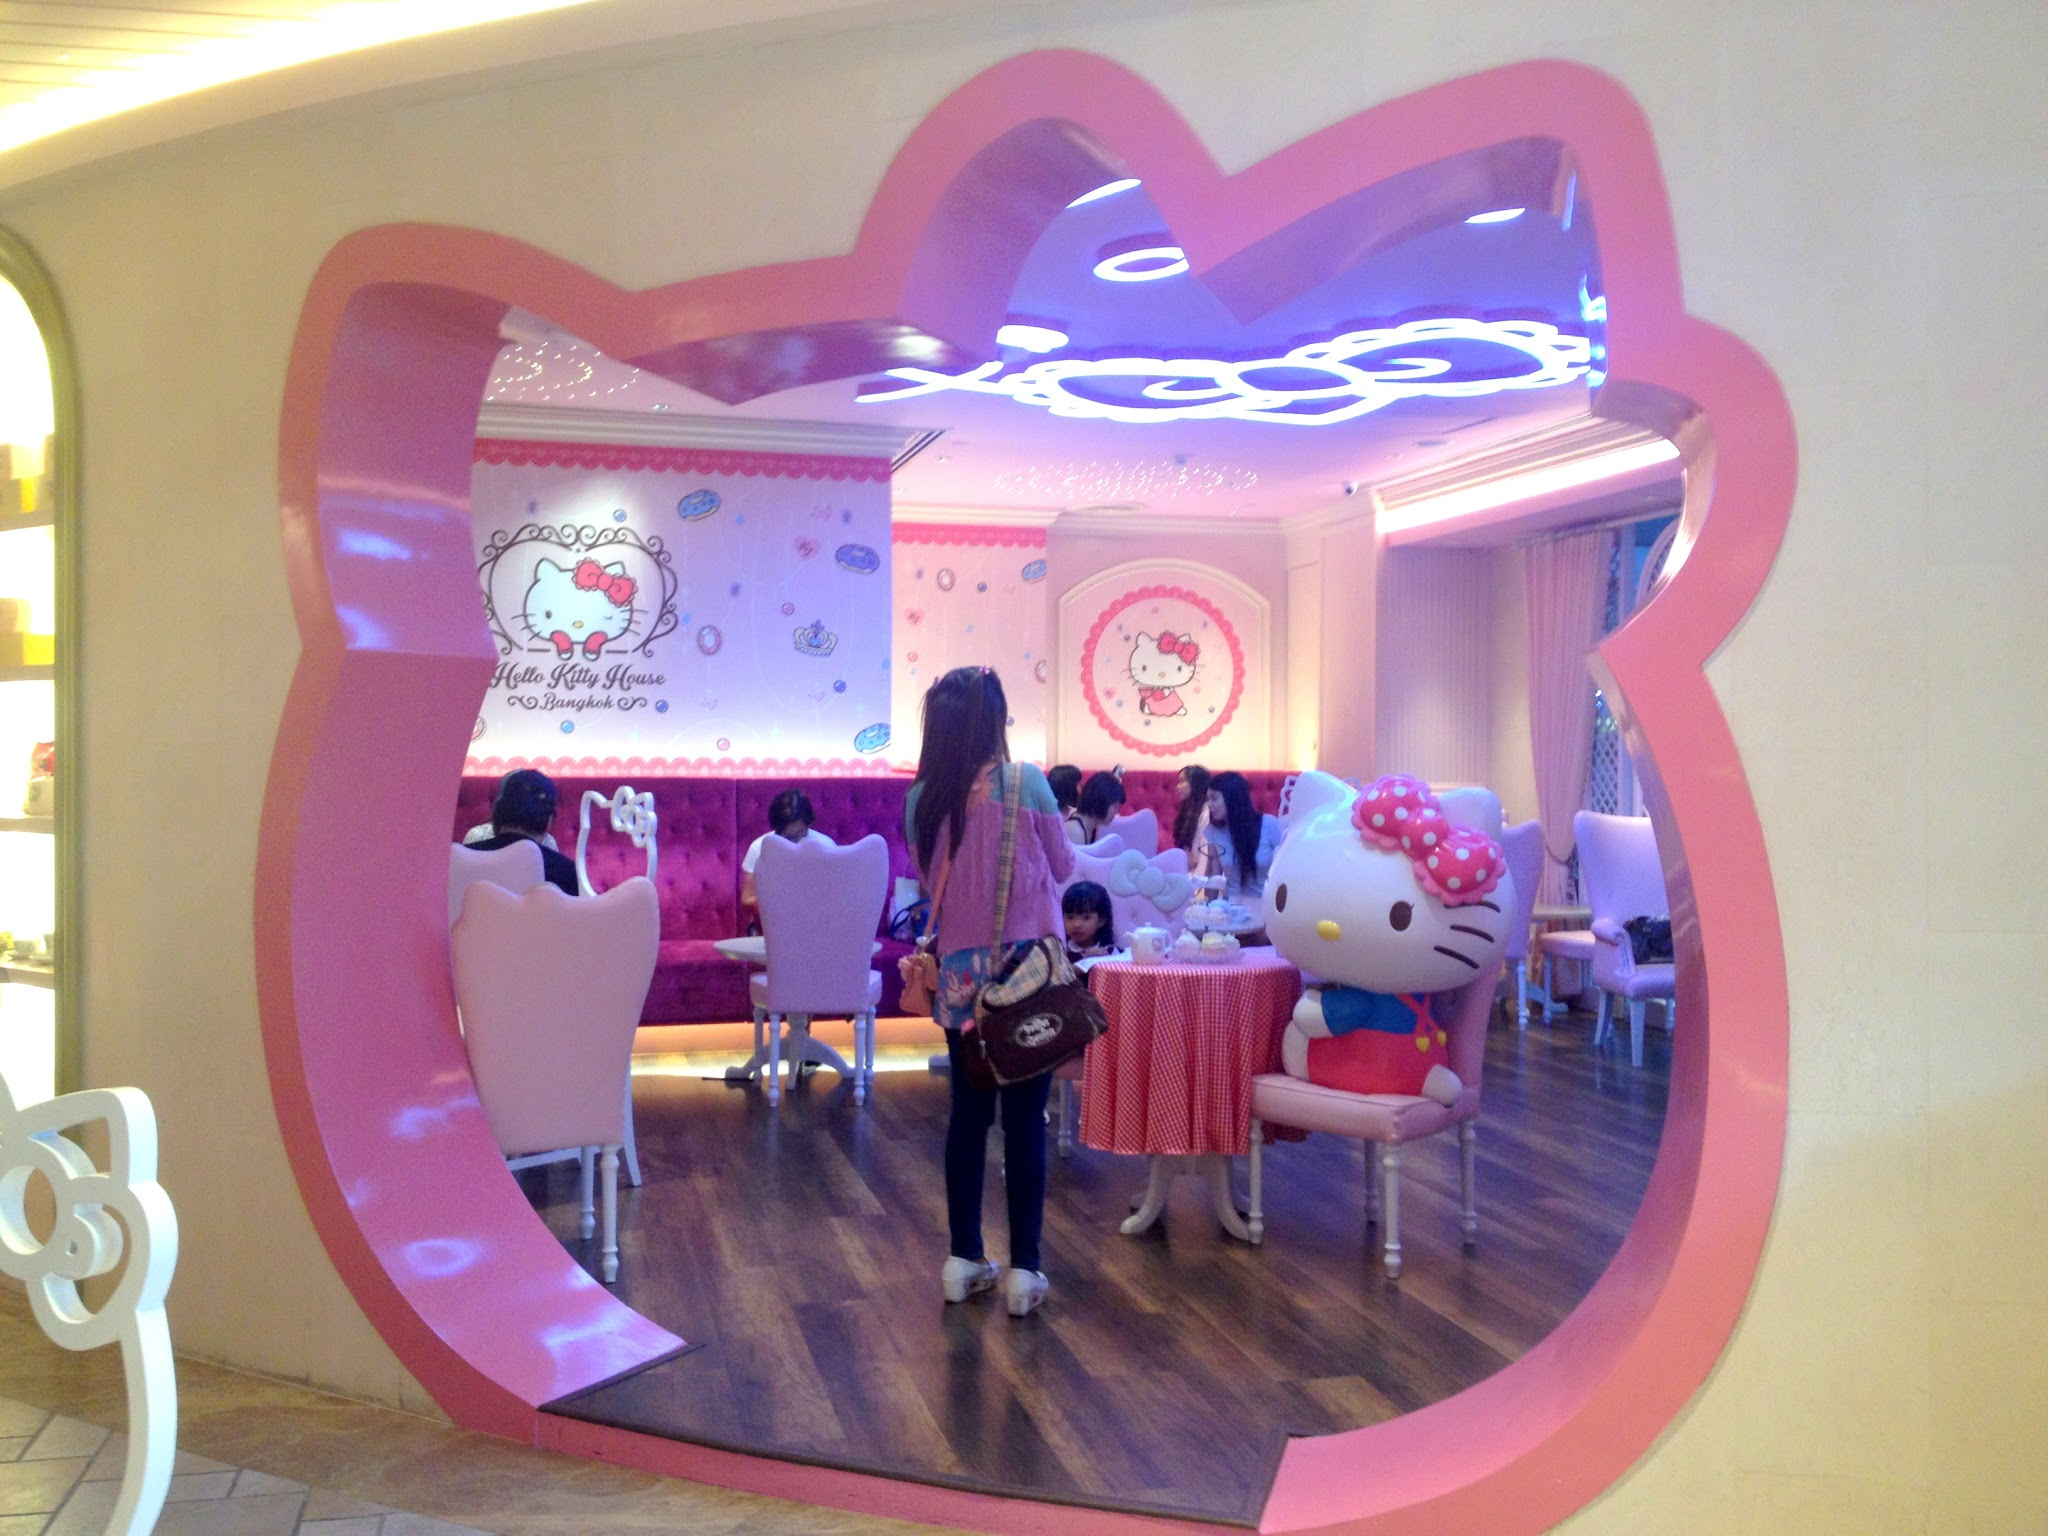 Hello Kitty House thailand travel blog - bangkok sanrio hello kitty house - adriennehoxy